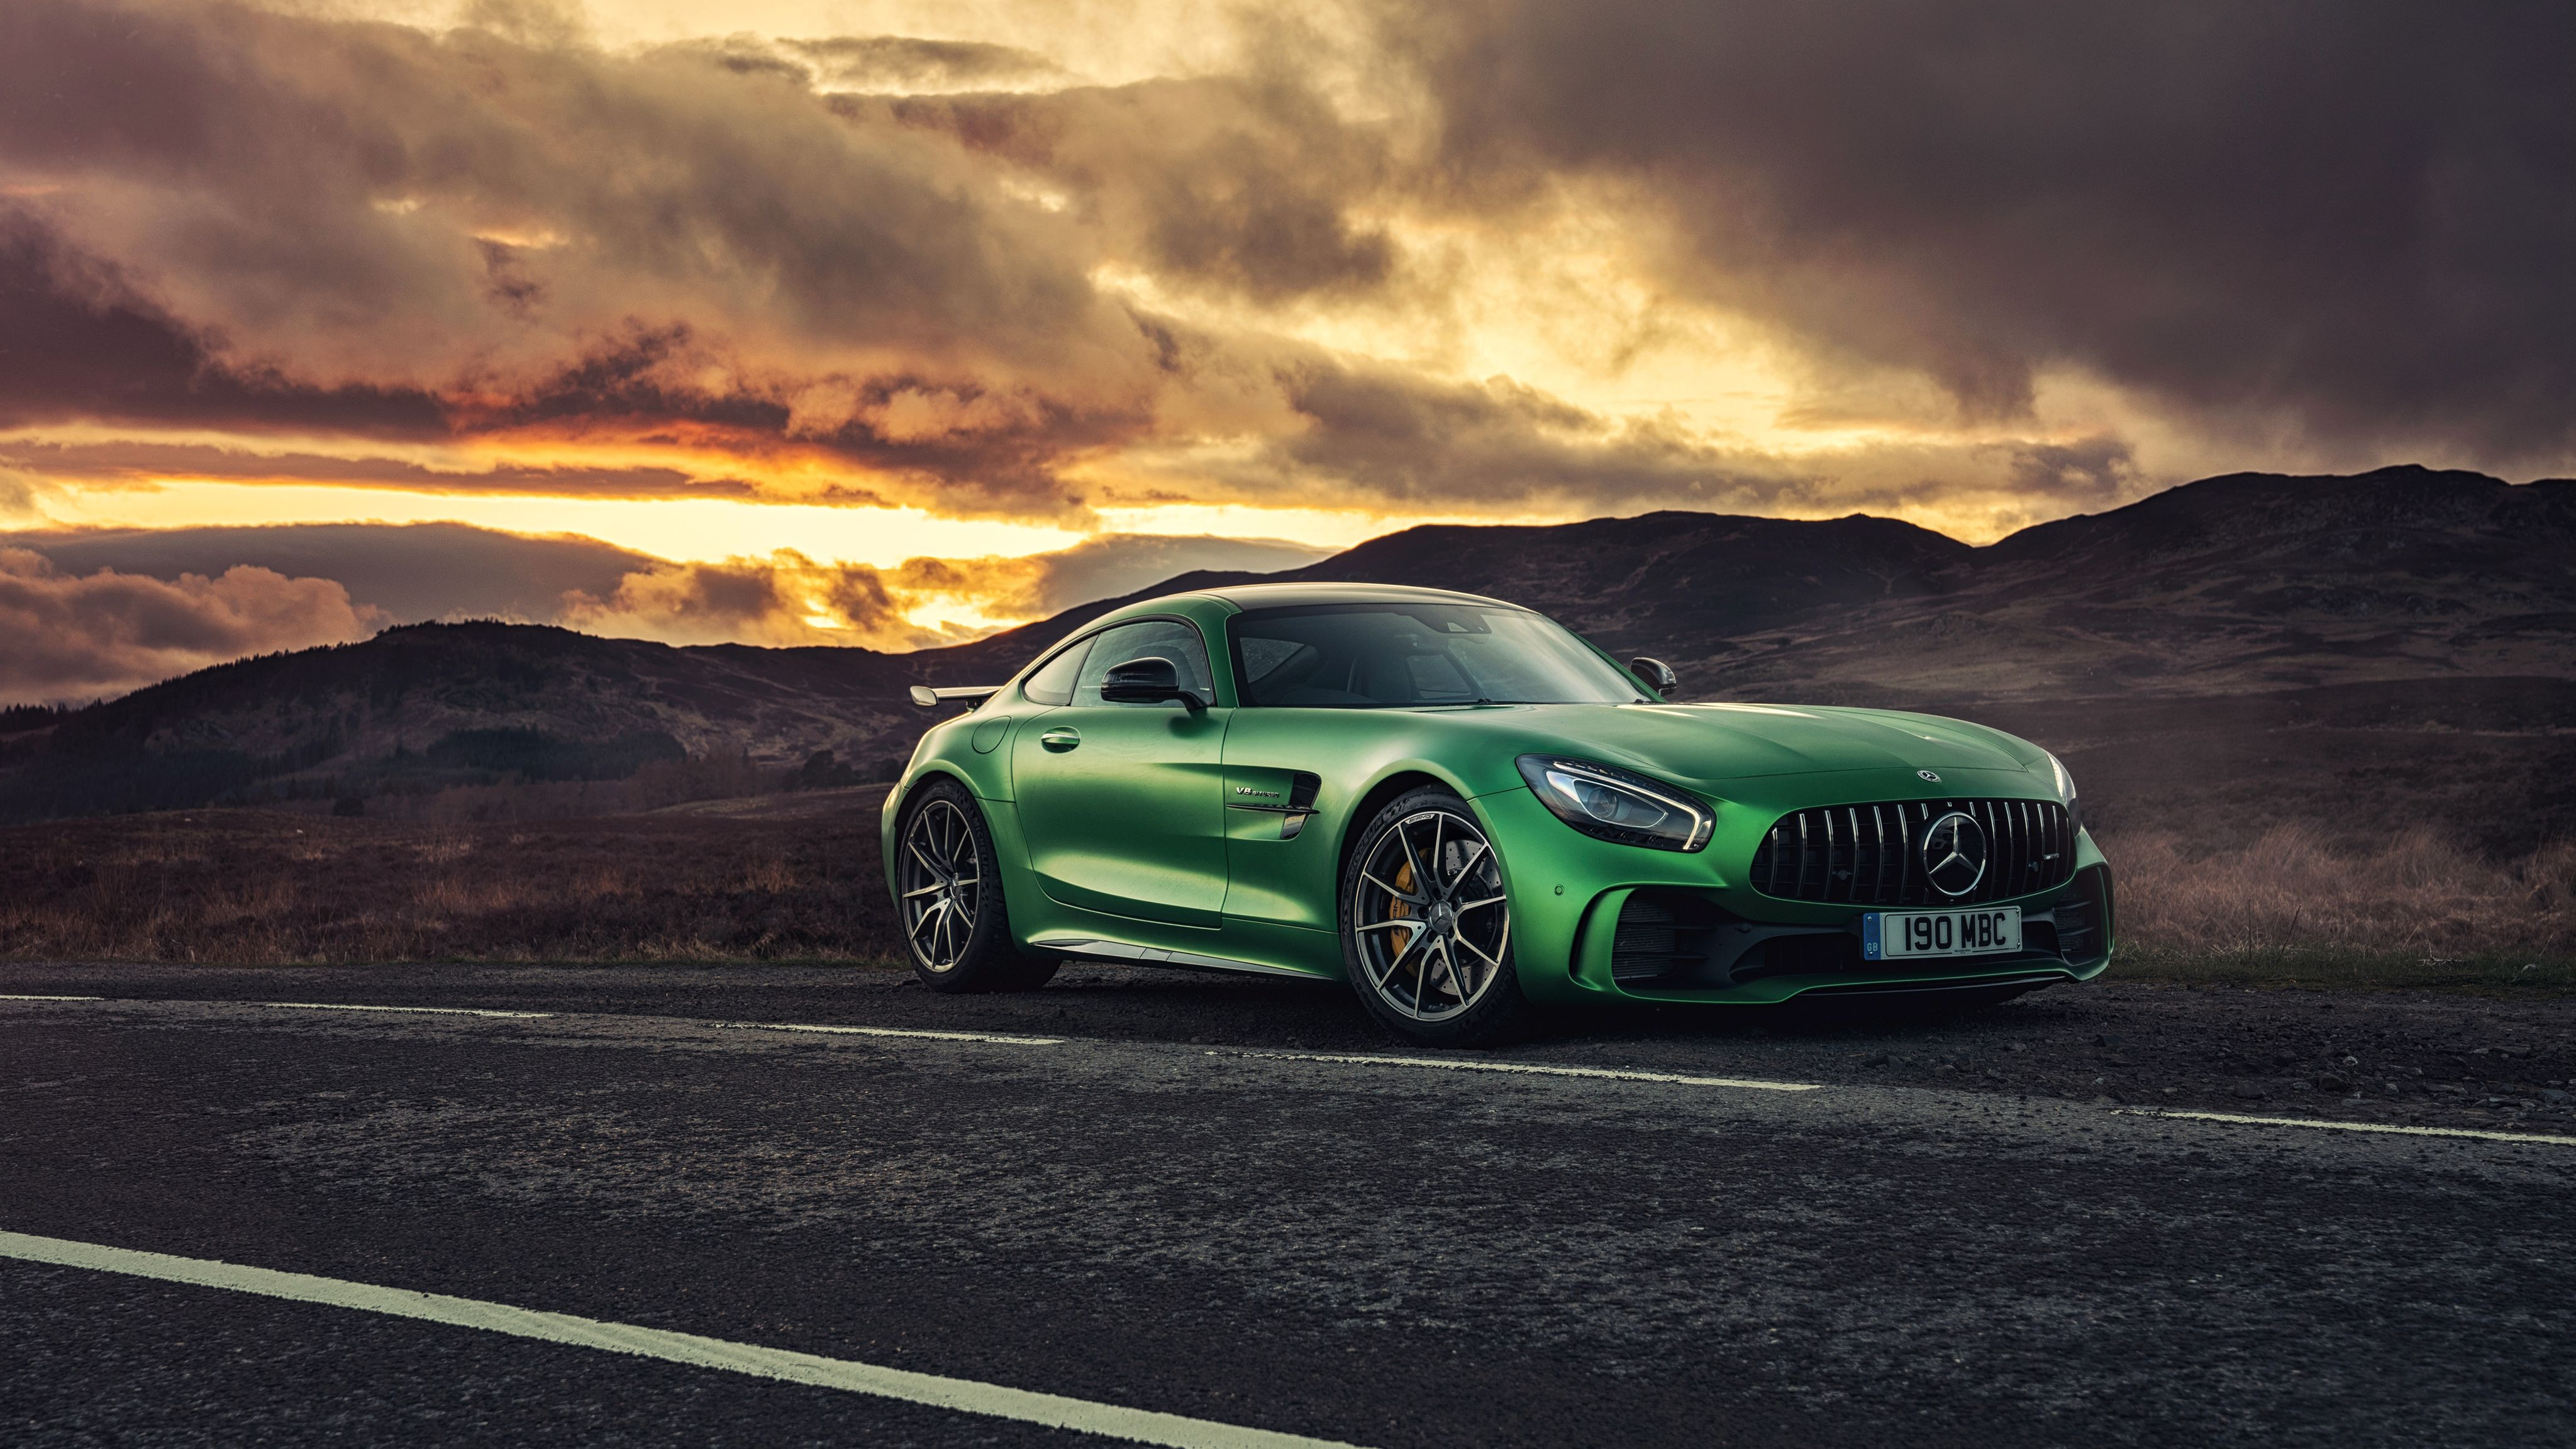 Mercedes Amg Gt 4k Wallpapers Top Free Mercedes Amg Gt 4k Backgrounds Wallpaperaccess